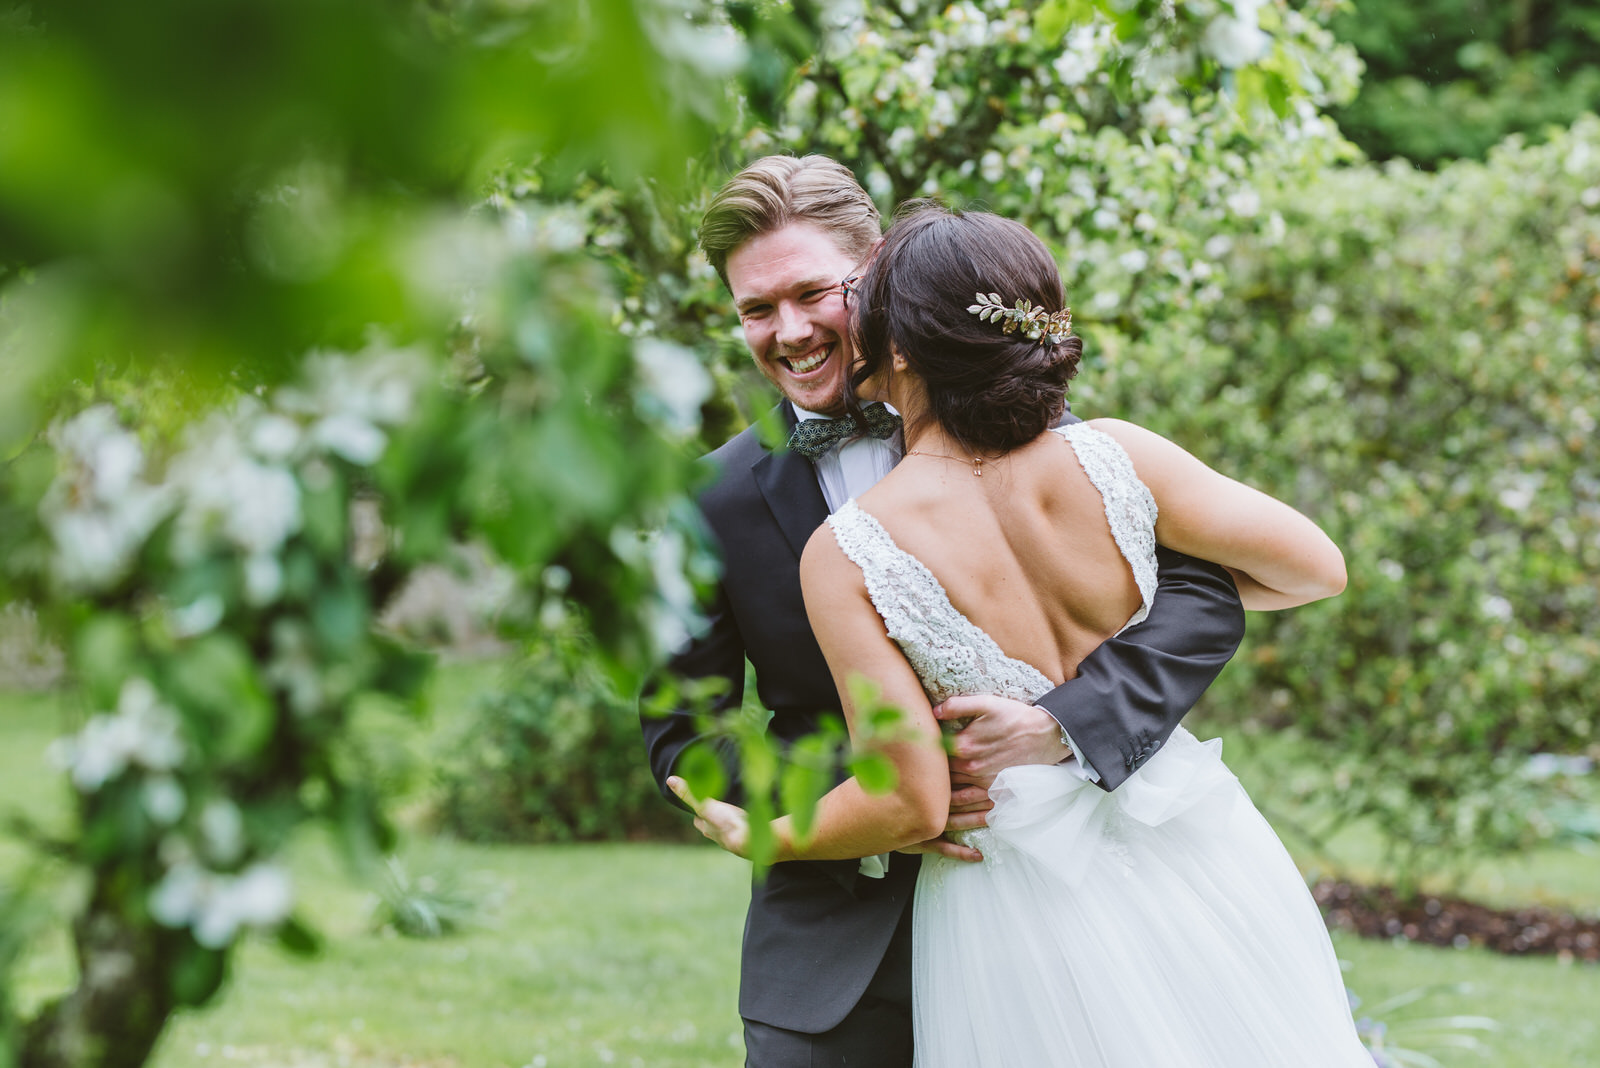 Bride and groom reactions at a first look